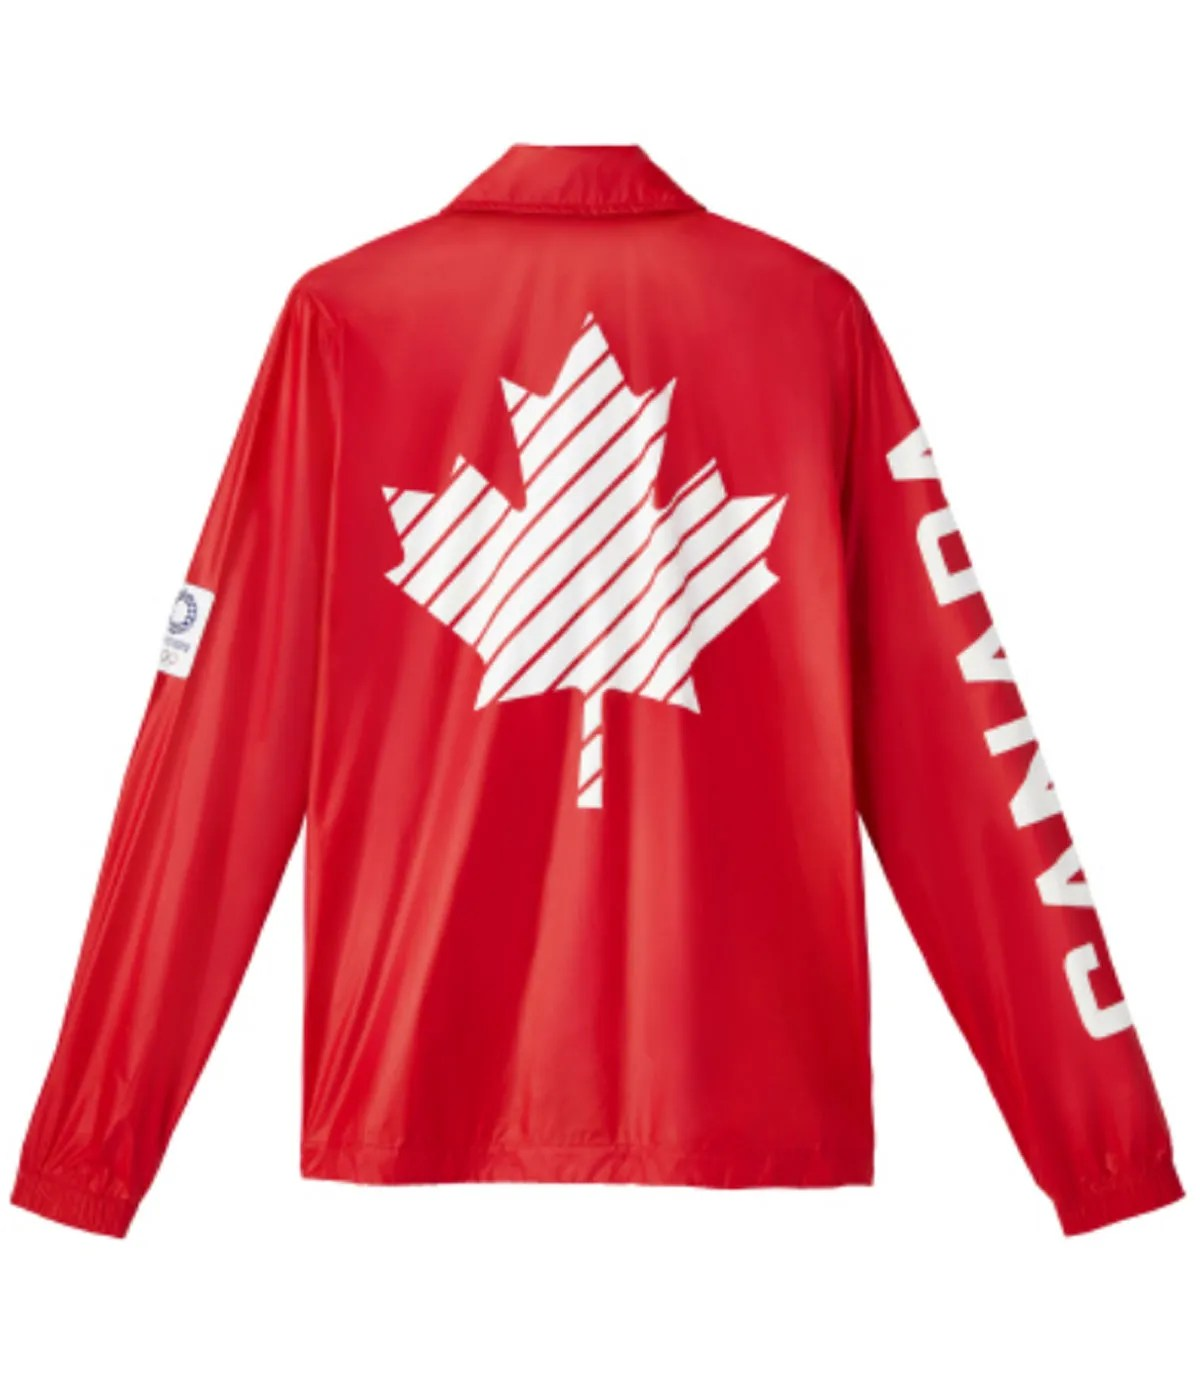 the-olympic-canada-red-printed-jacket